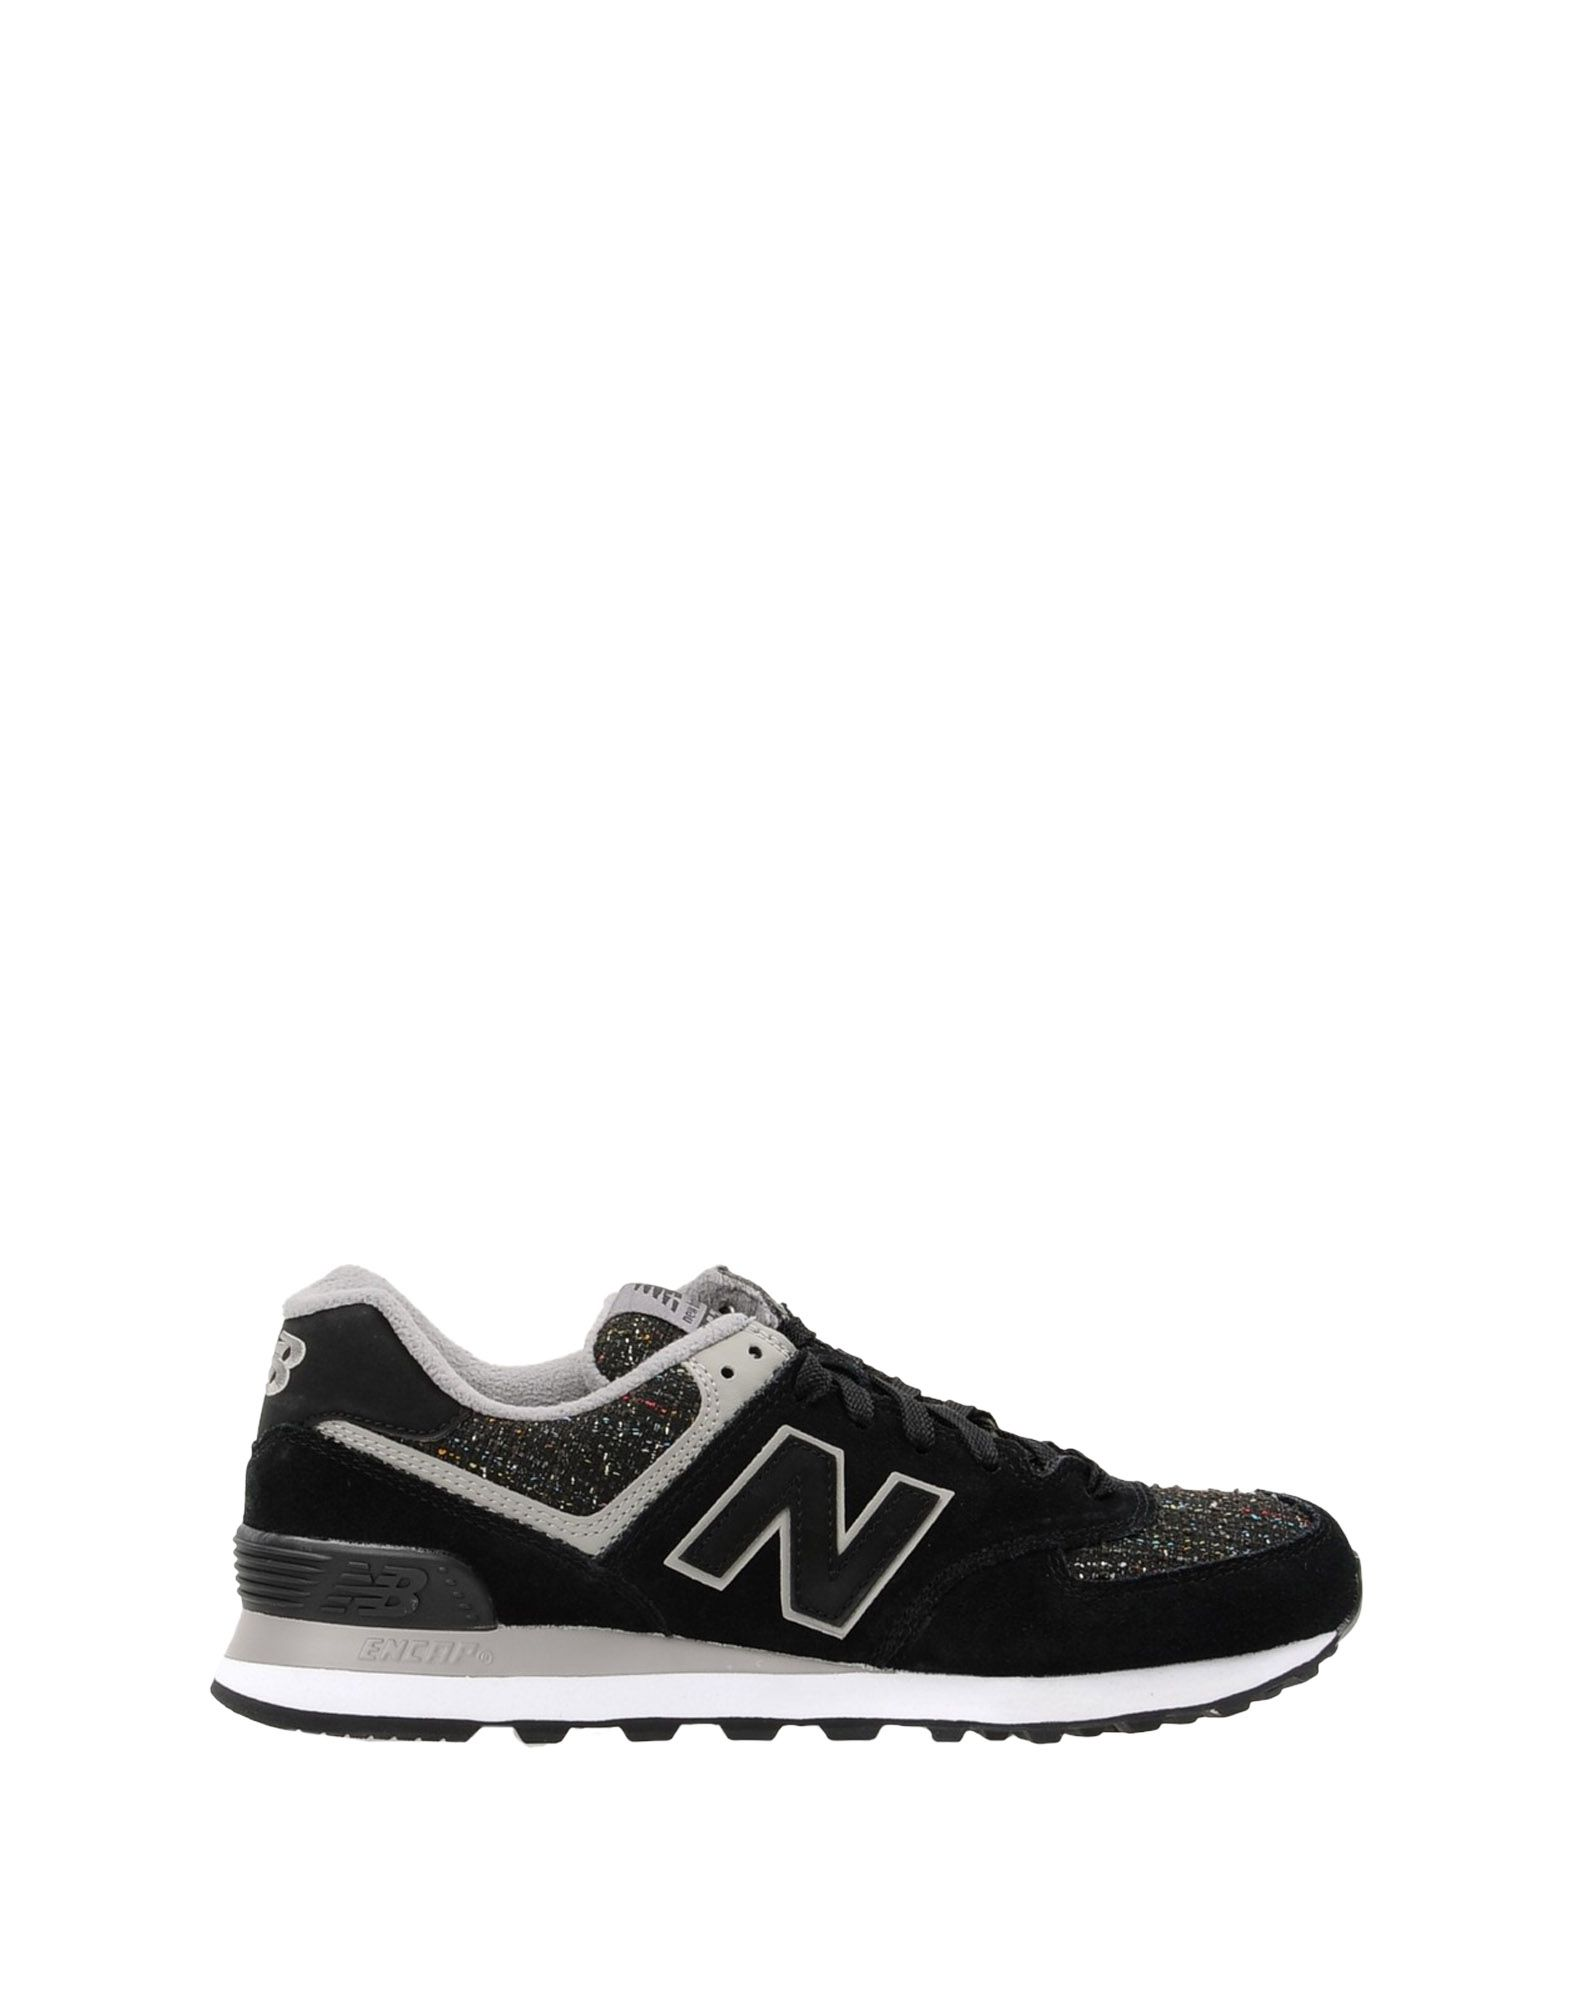 ... Sneakers New Balance 574 Suede/Winter Textile - Femme - Sneakers New  Balance sur ...